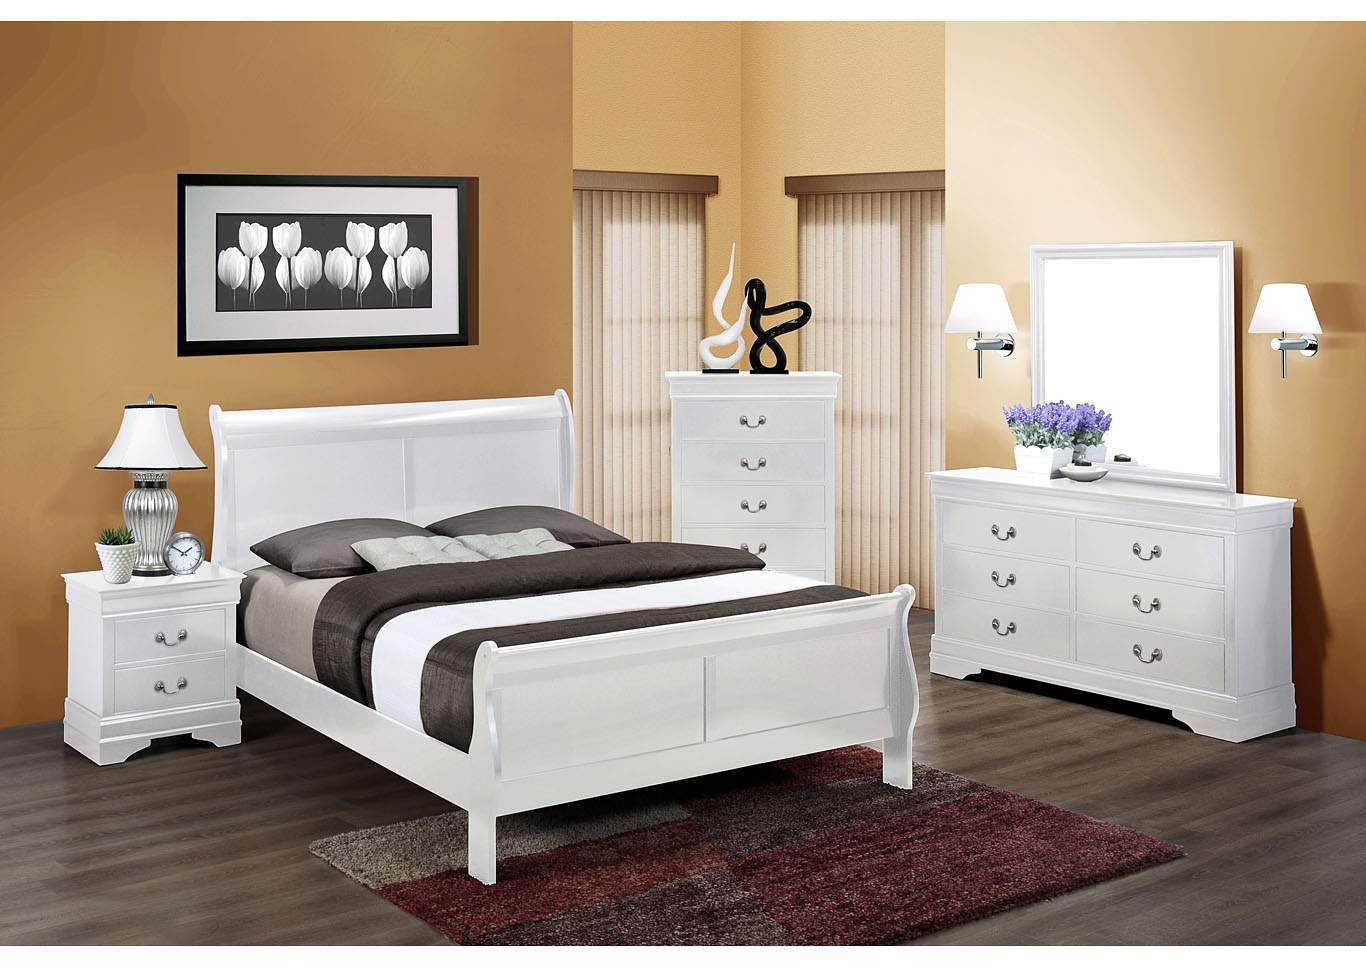 Louis Philip White Queen Sleigh Bed w/6 Drawer Dresser, Mirror and Nightstand,Crown Mark